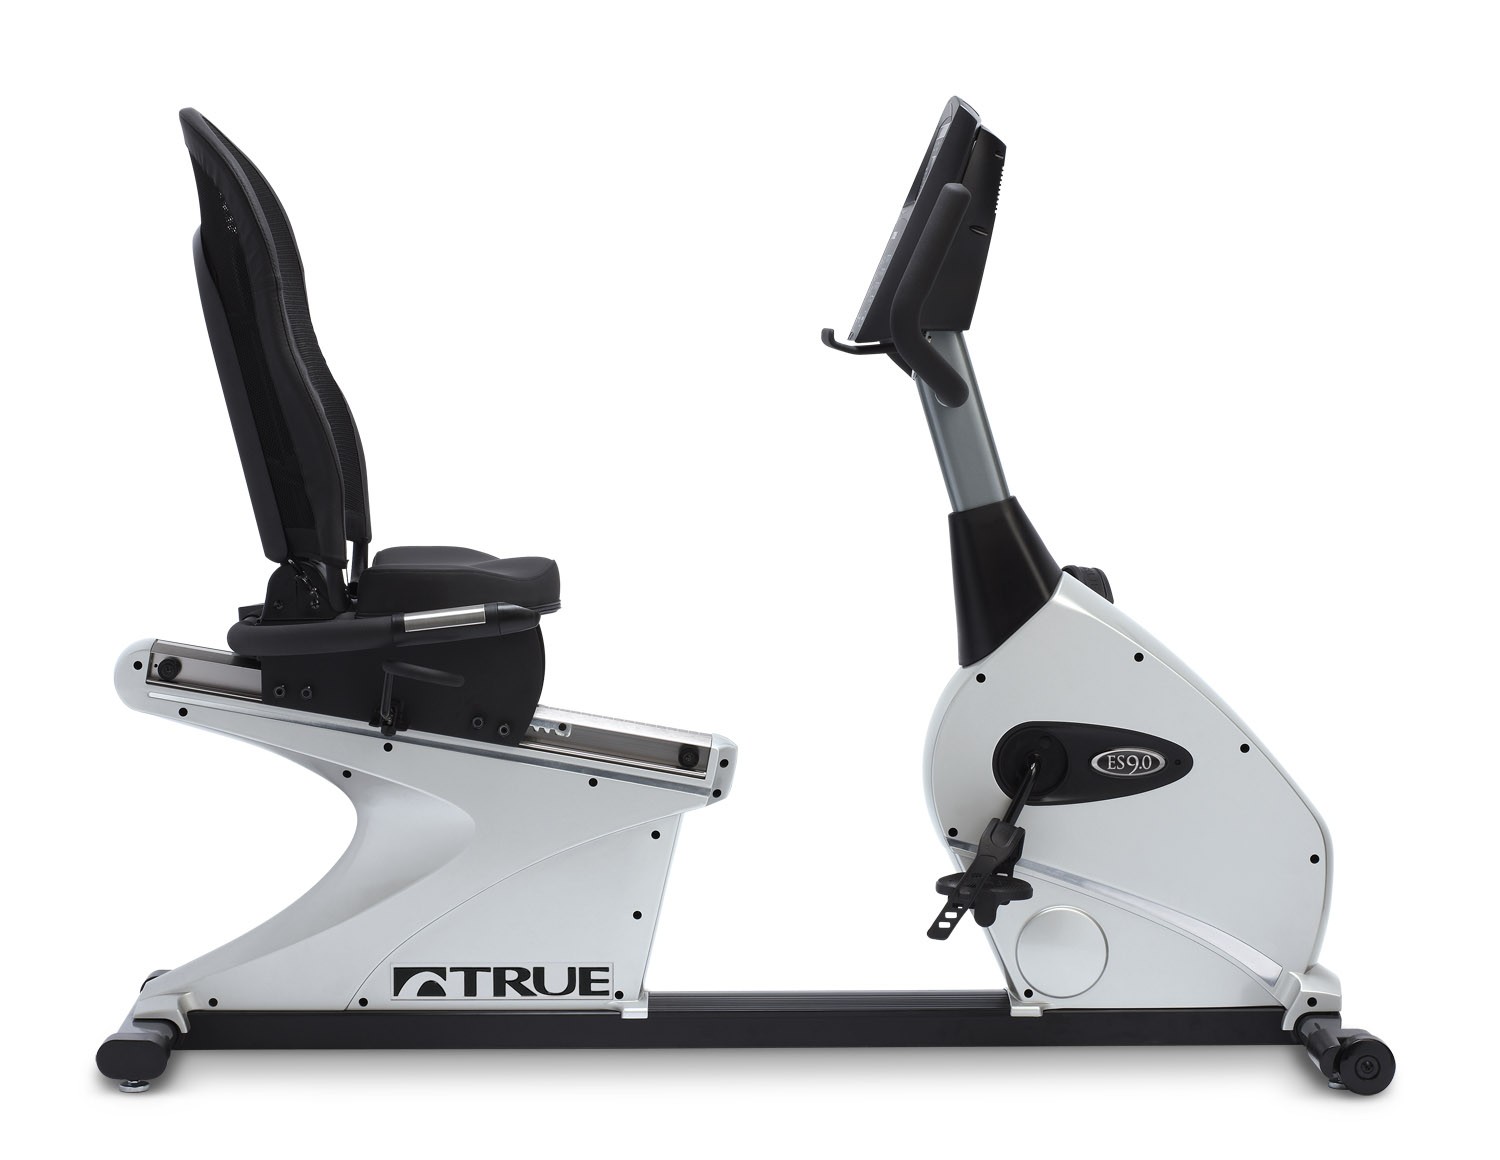 True Fitness ES9.0S Recumbent